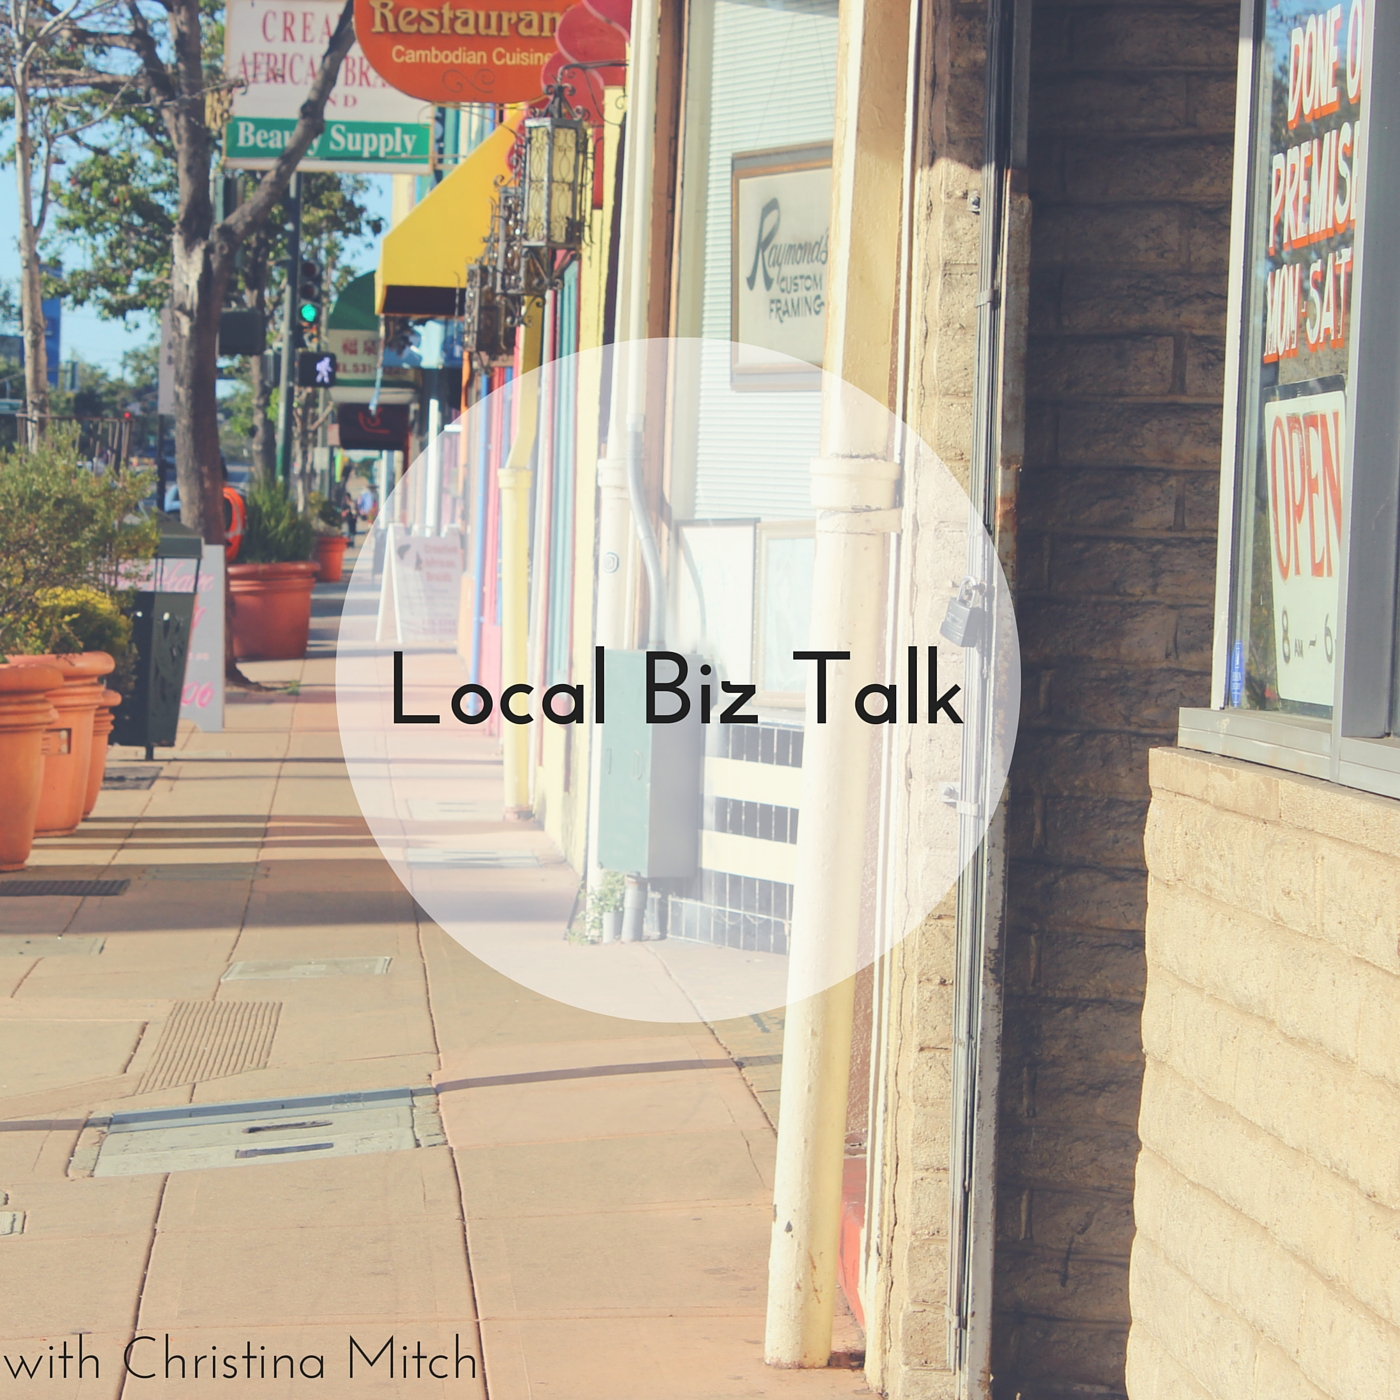 Local Biz Talk